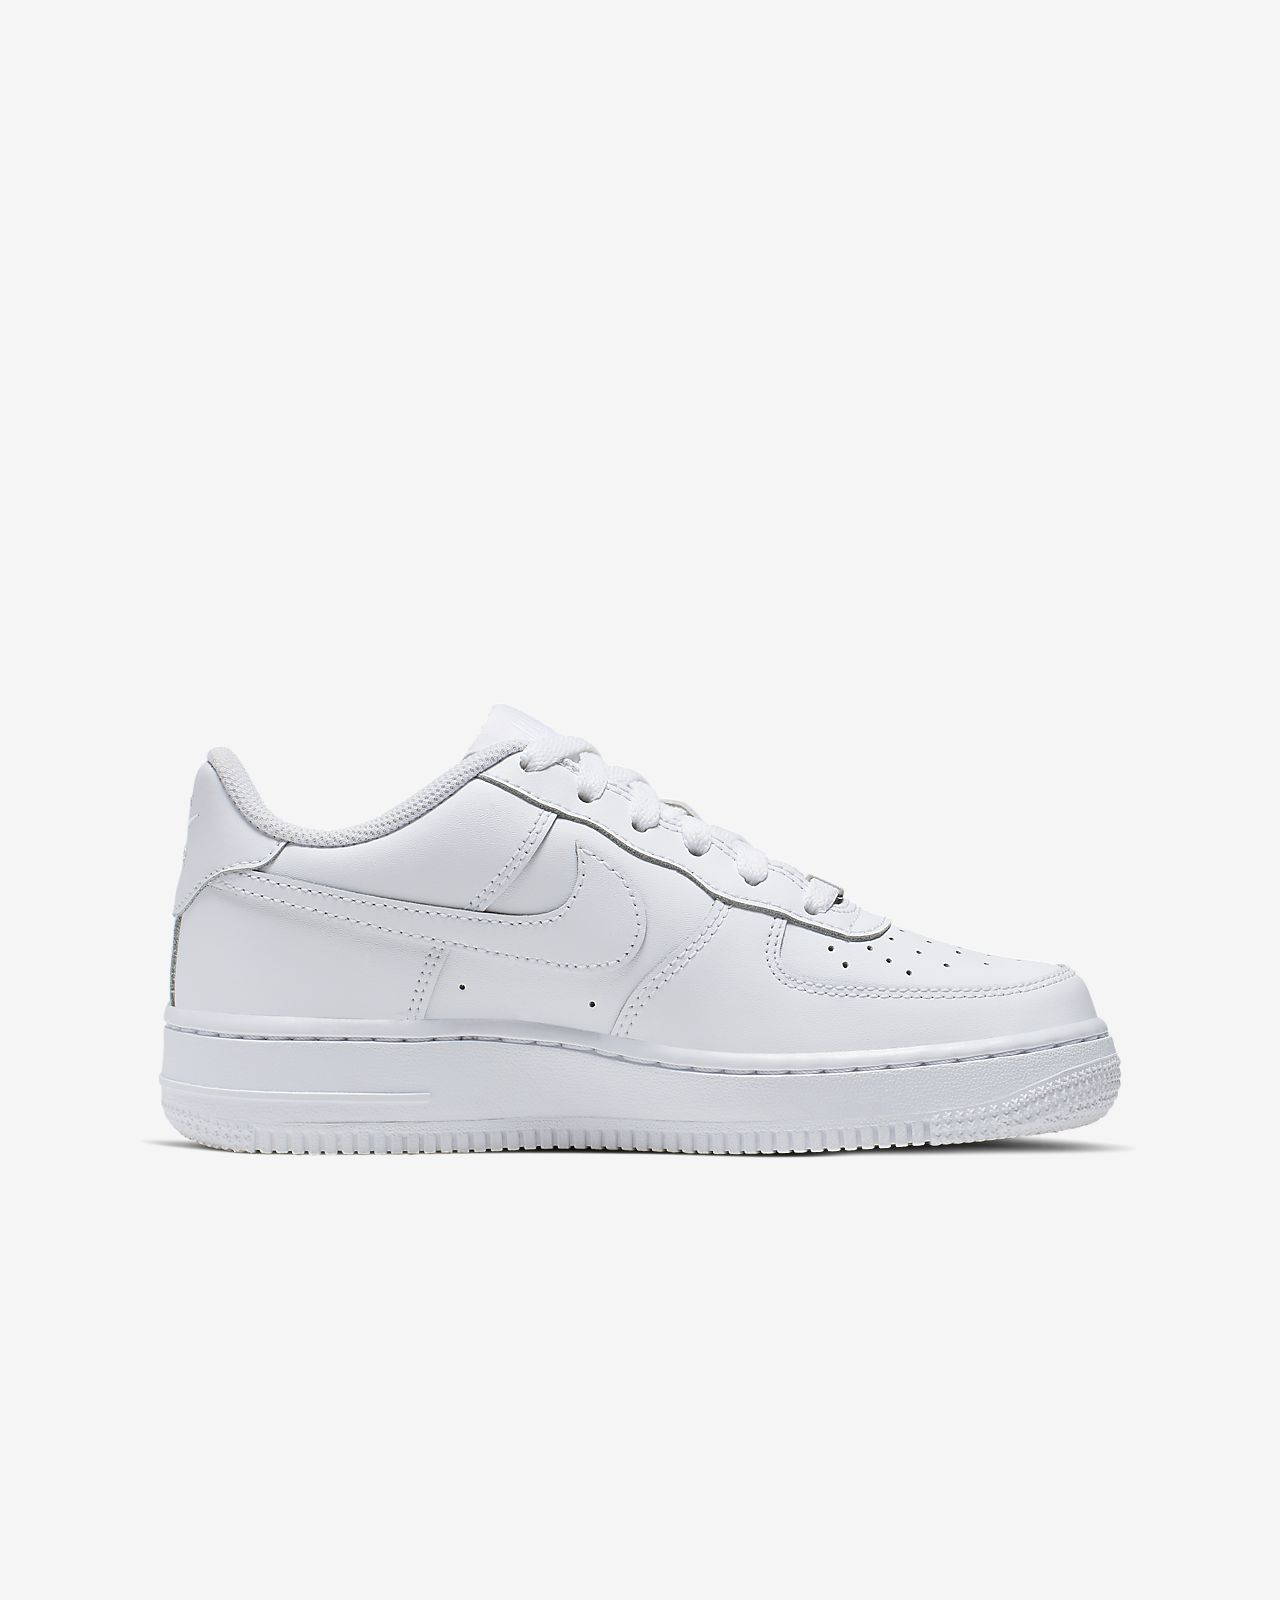 035c9de05a367b Nike Air Force 1 Big Kids  Shoe. Nike.com